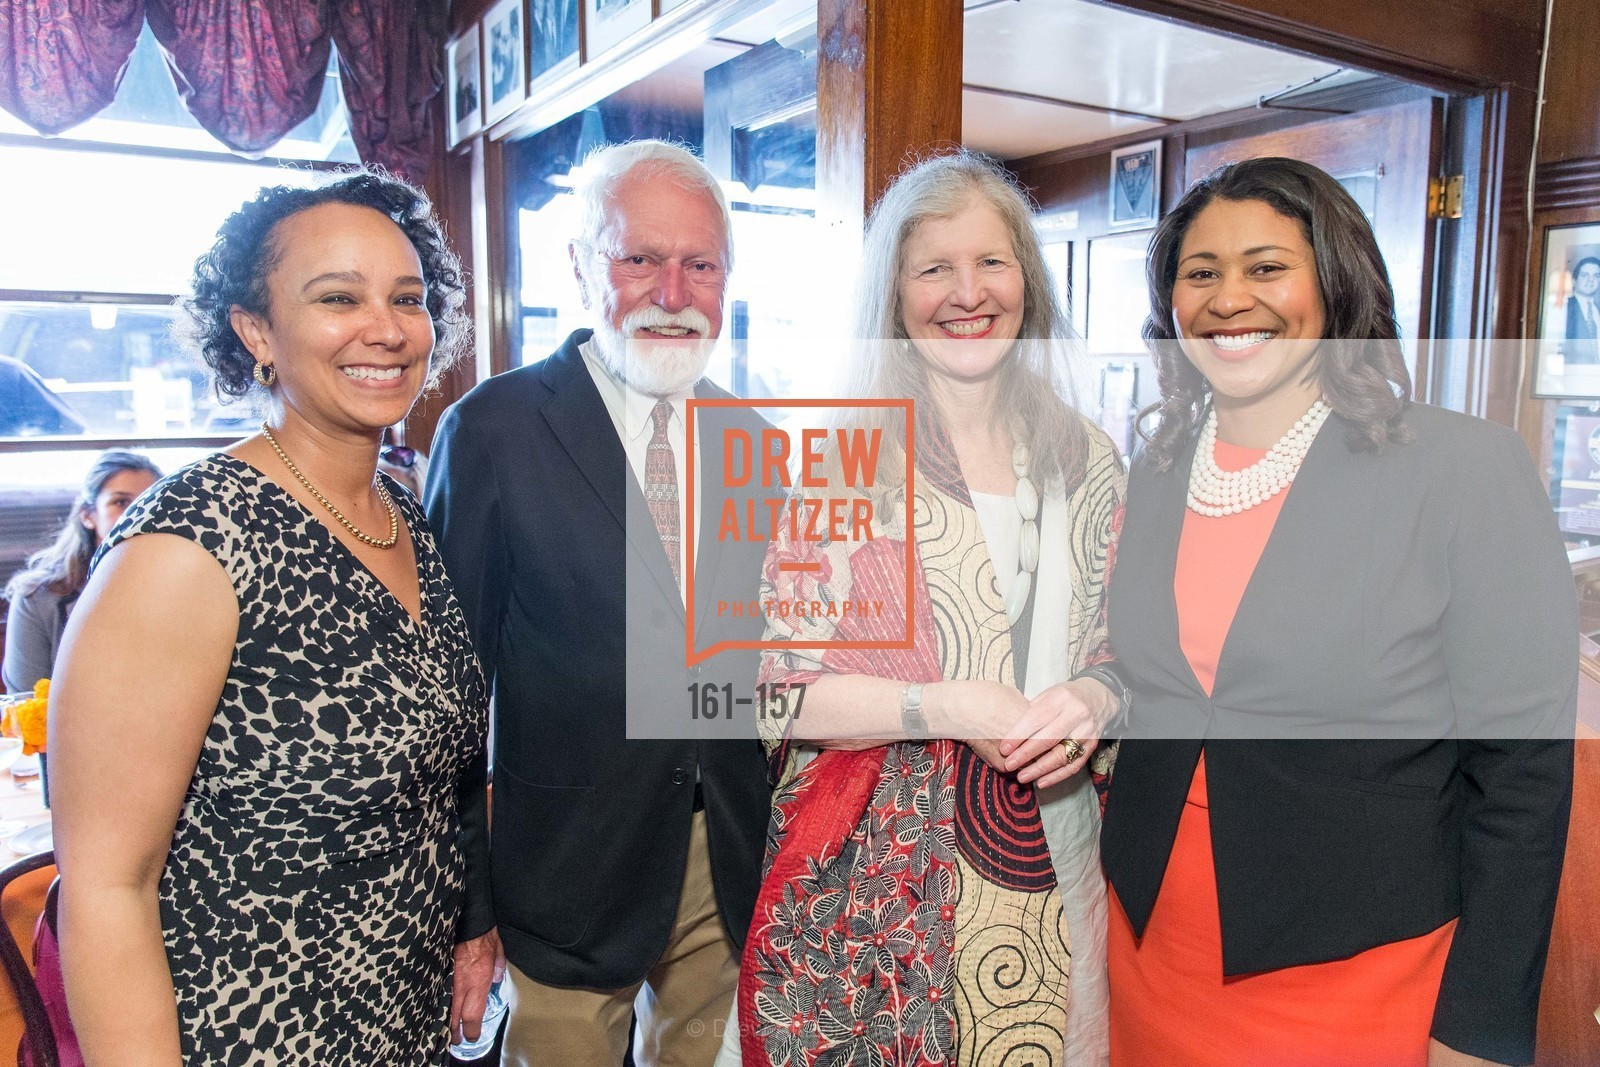 Naomi Kelly, Lewis Sykes, Leah Garchrik, London Breed, 3-Ring Lunch Celebration honoring Renel Brooks-Moon, John's Grill. 63 Ellis Street, June 7th, 2015,Drew Altizer, Drew Altizer Photography, full-service event agency, private events, San Francisco photographer, photographer California